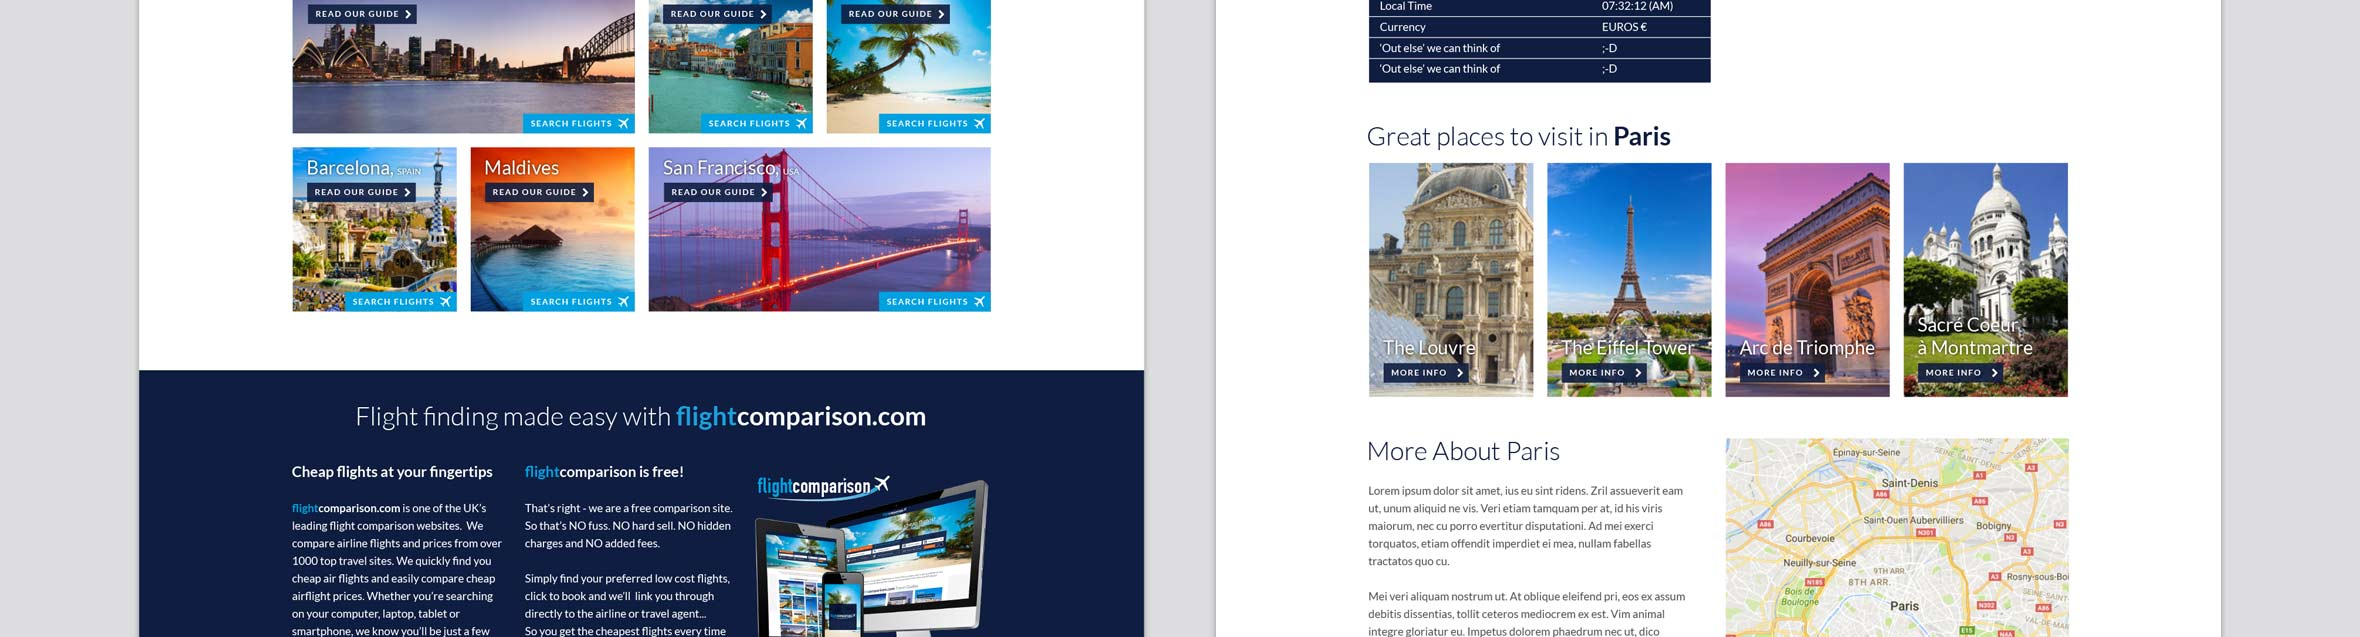 Flight Comparison Website Re-design